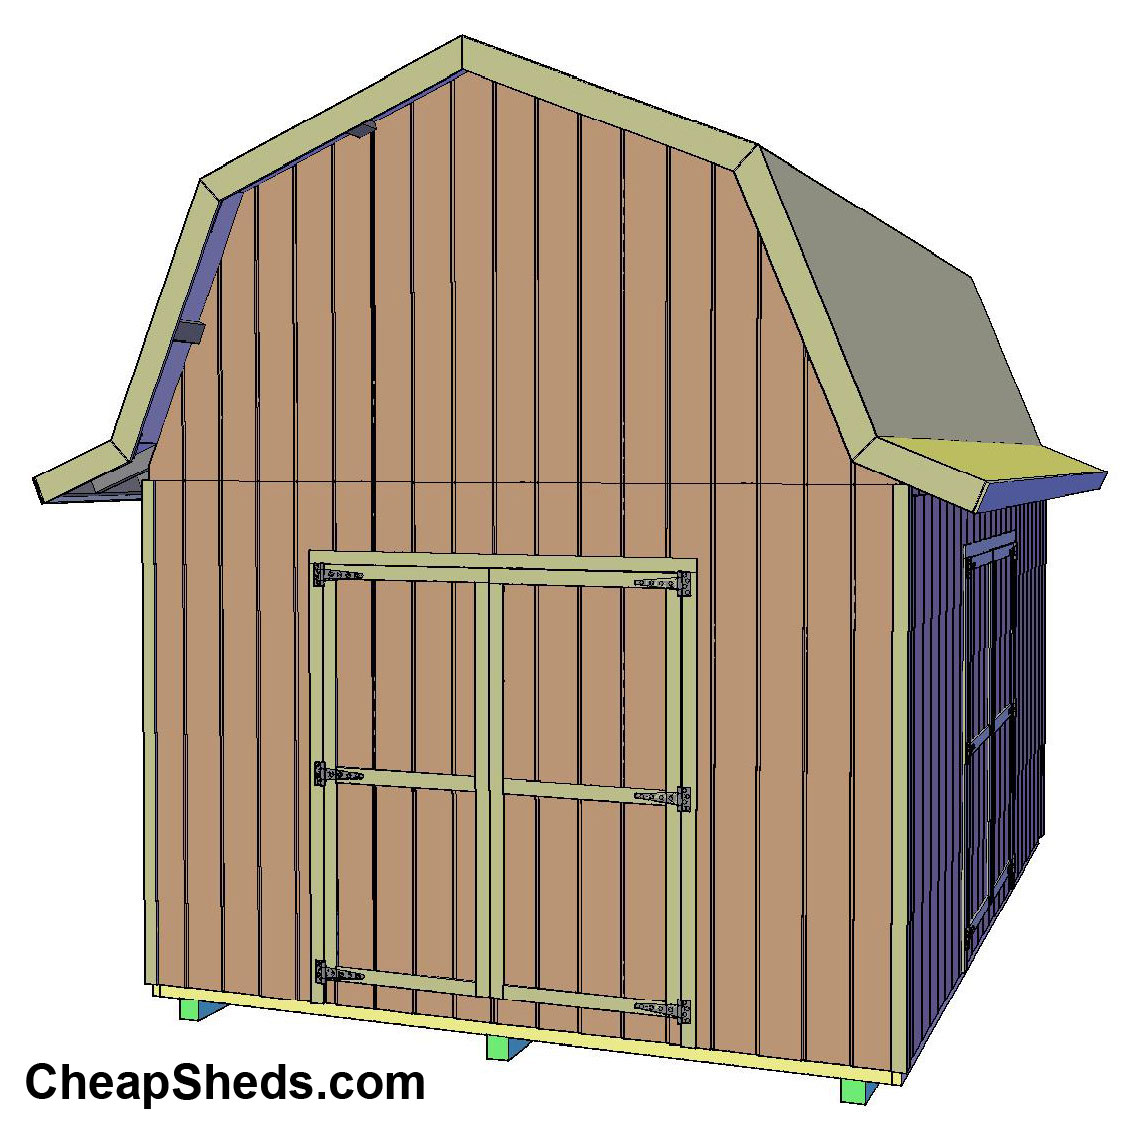 Barn style or gambrel roof line Before